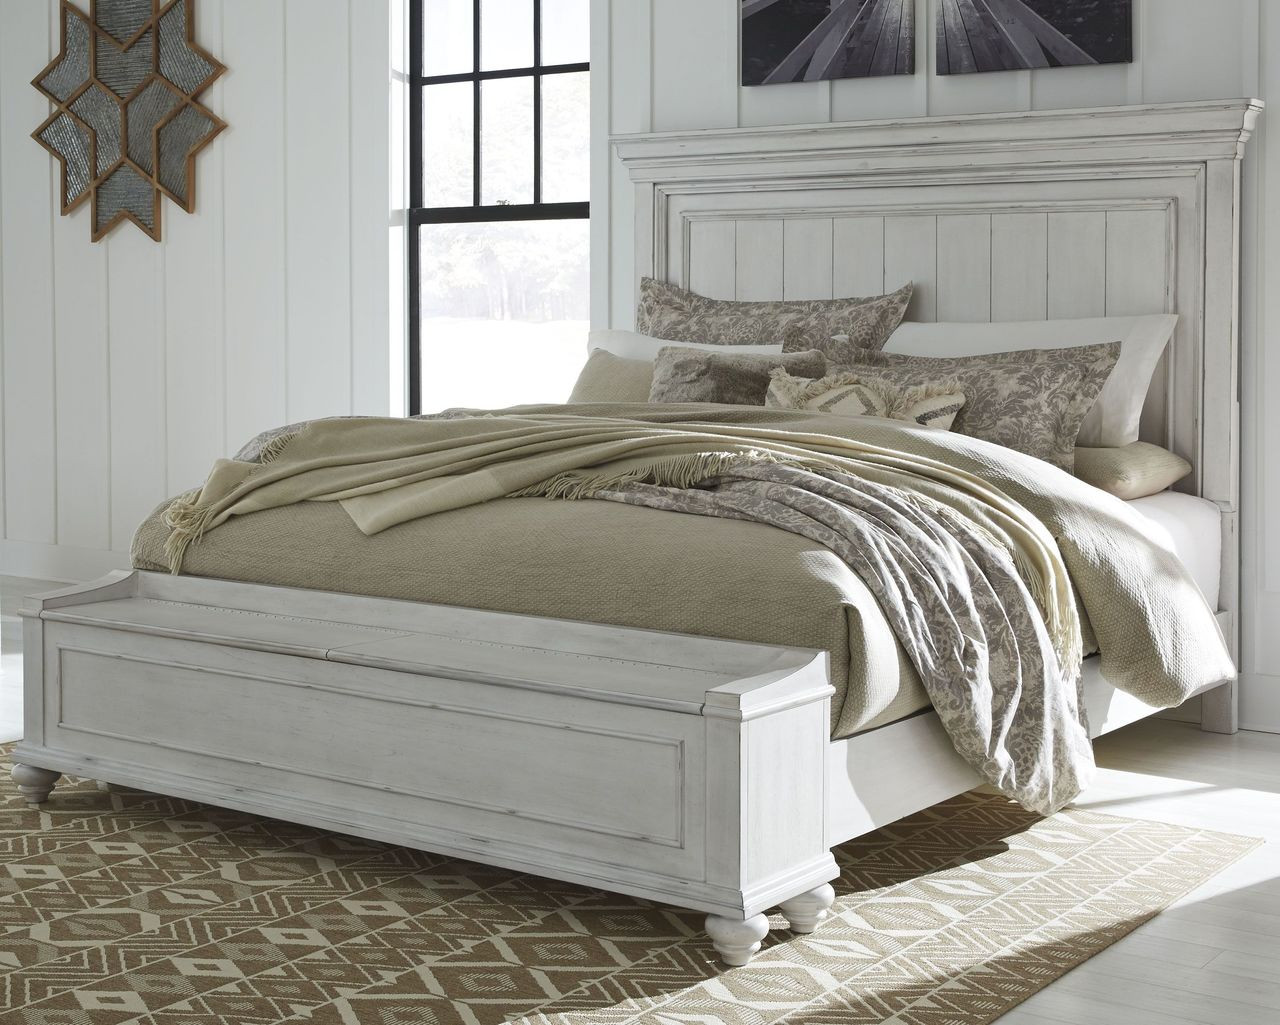 The Kanwyn Whitewash California King Panel Upholstered Bed With Storage Available At Gibson Mcdonald Serving Waycross Ga And Surrounding Areas